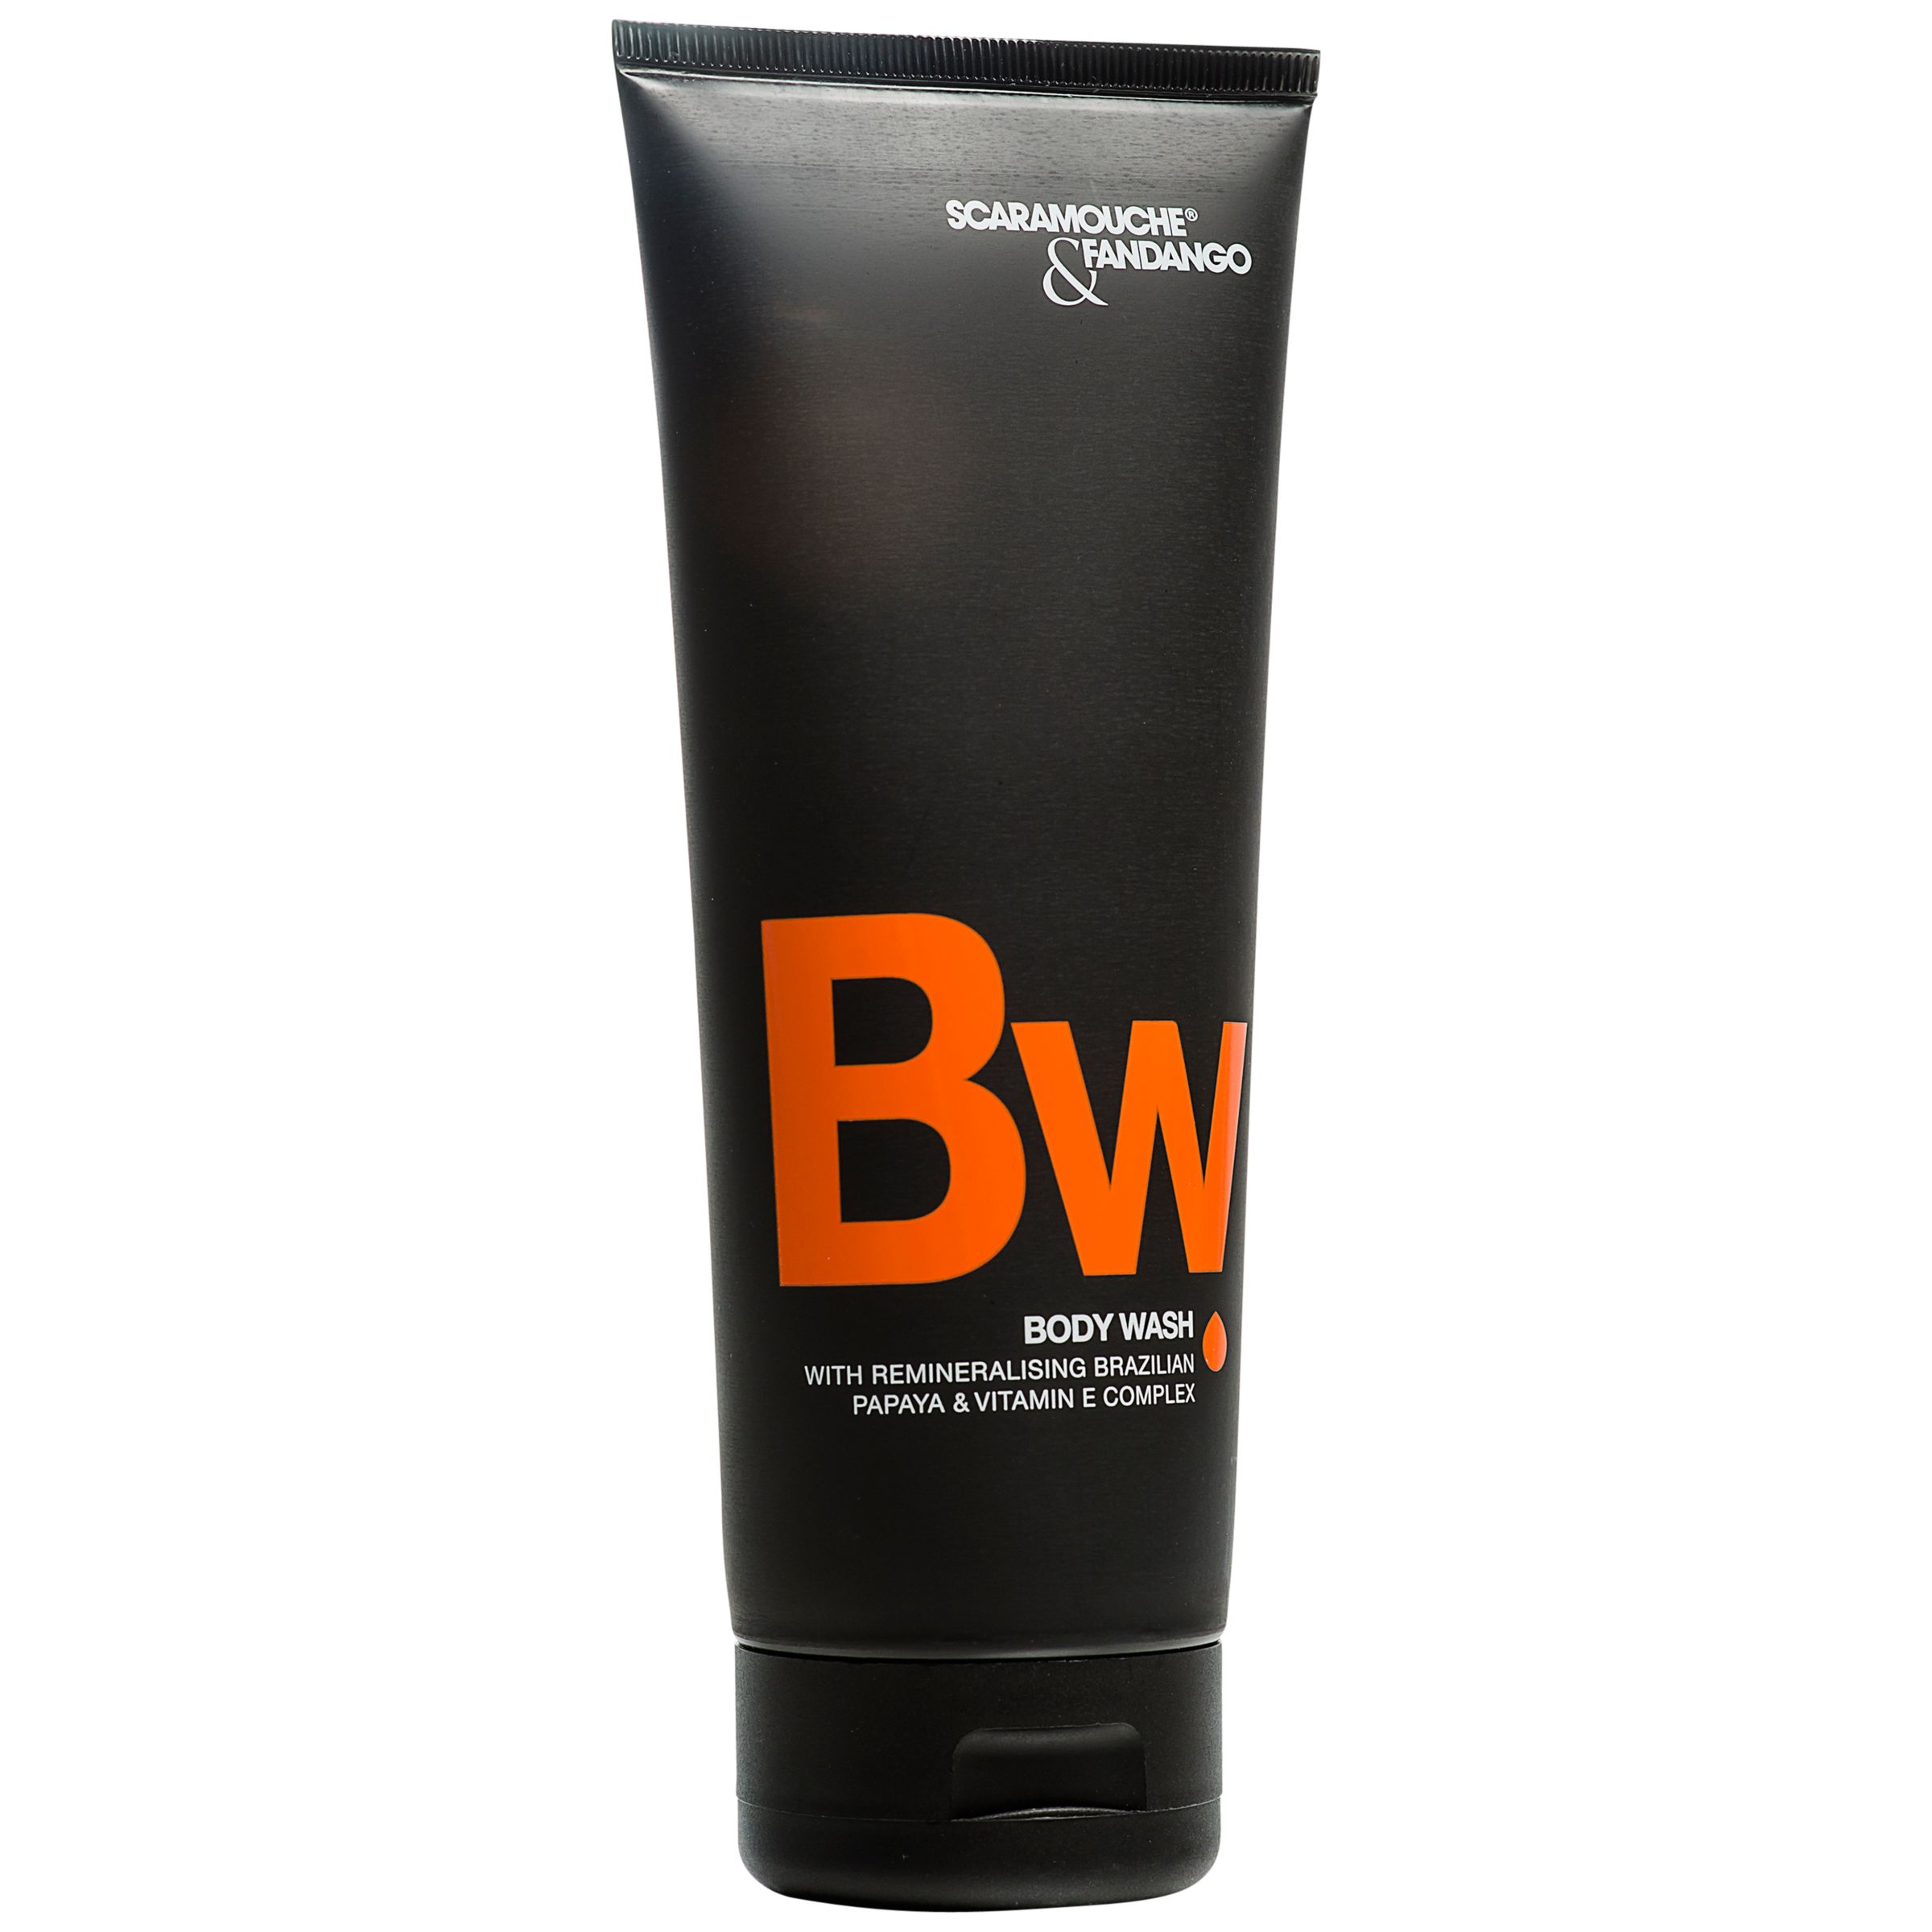 Scaramouche and Fandango Scaramouche and Fandango Body Wash, 200ml